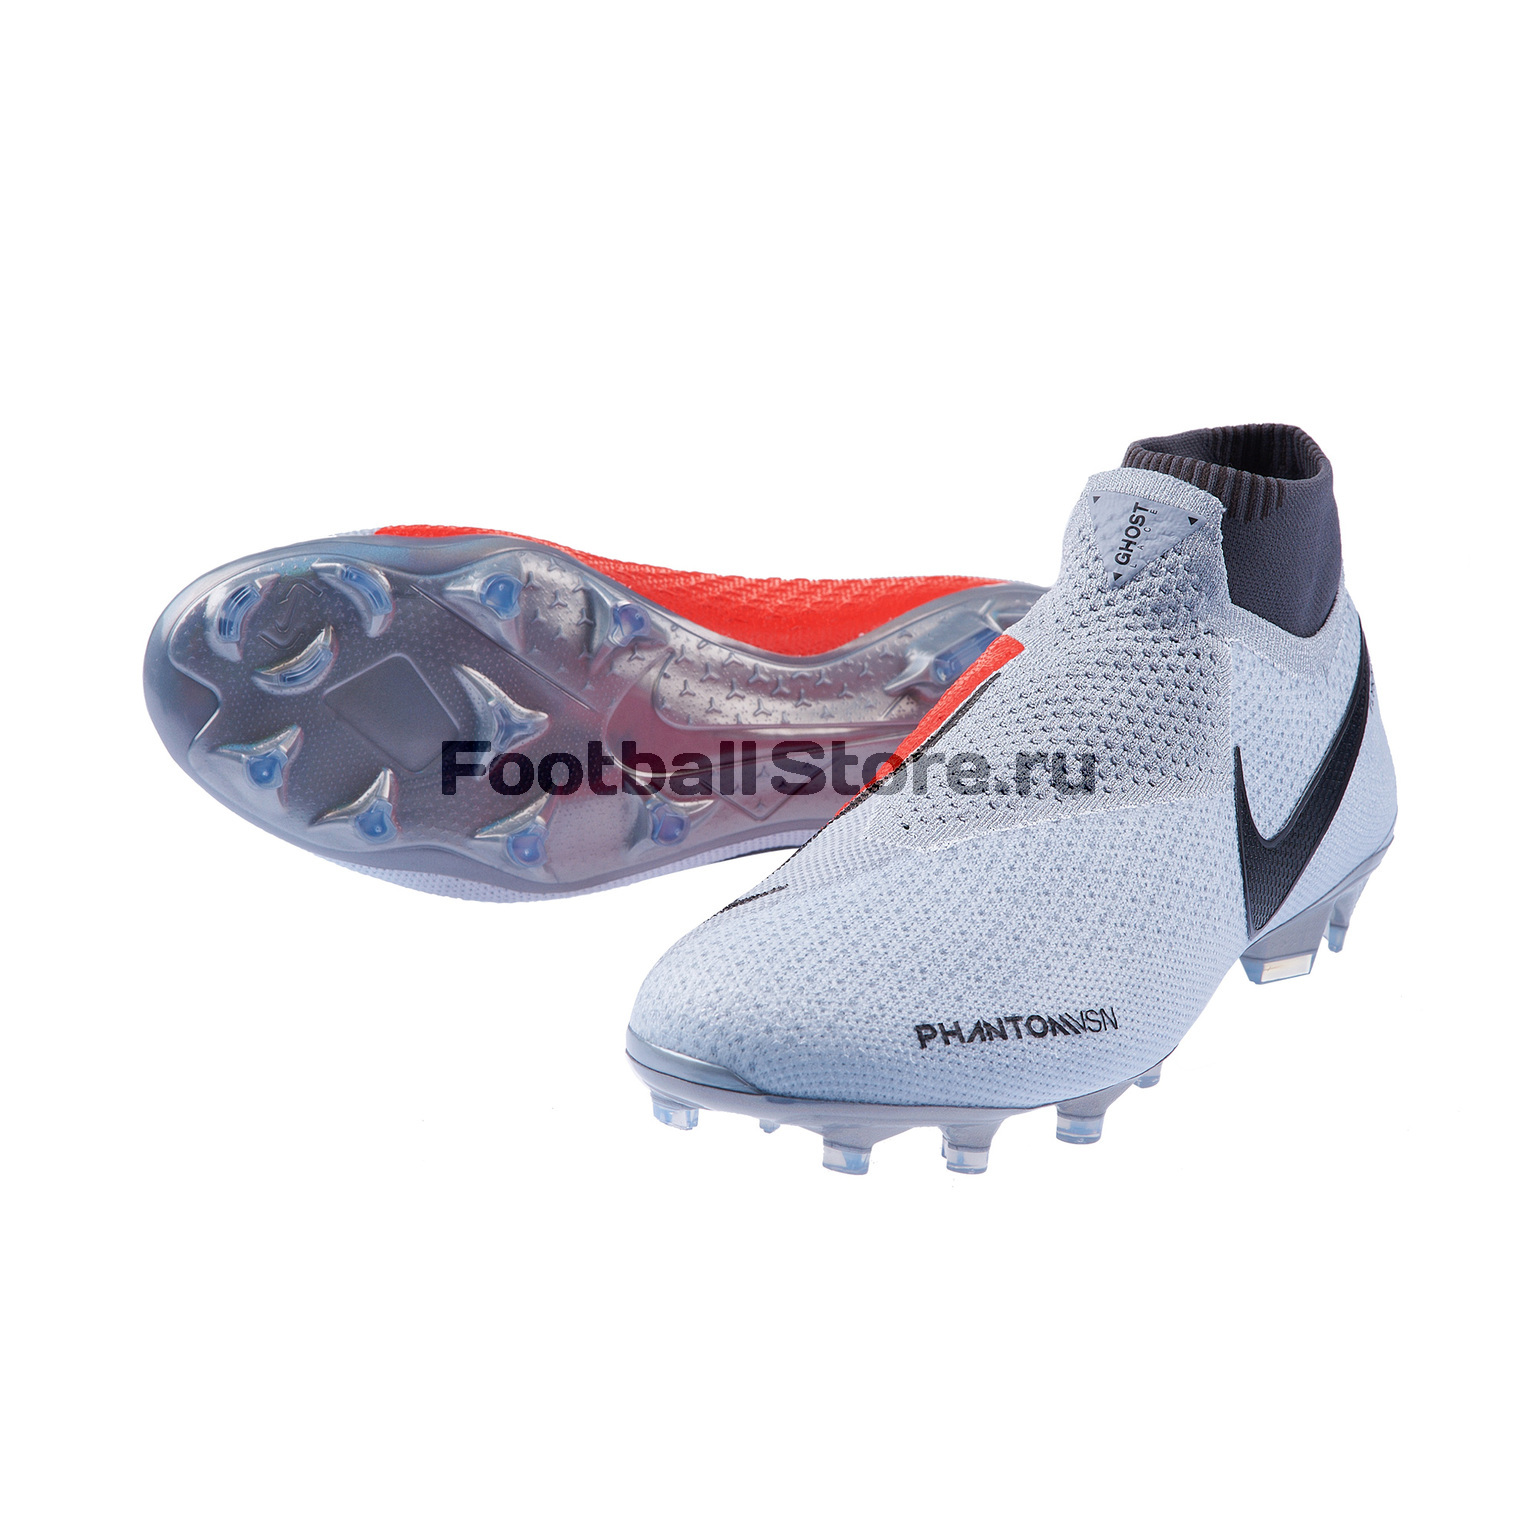 Бутсы Nike Phantom Vision Elite DF FG AO3262-060 бутсы nike mercurial victory iii fg 509128 800